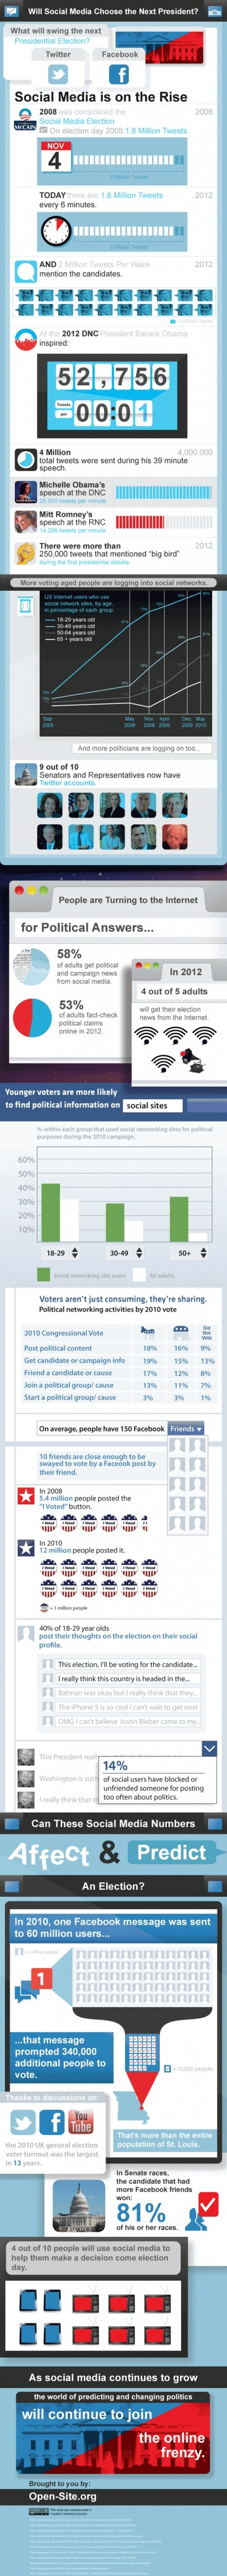 How Social Media Will Affect the Election (Infographic) | Infographics and Social Media | Scoop.it